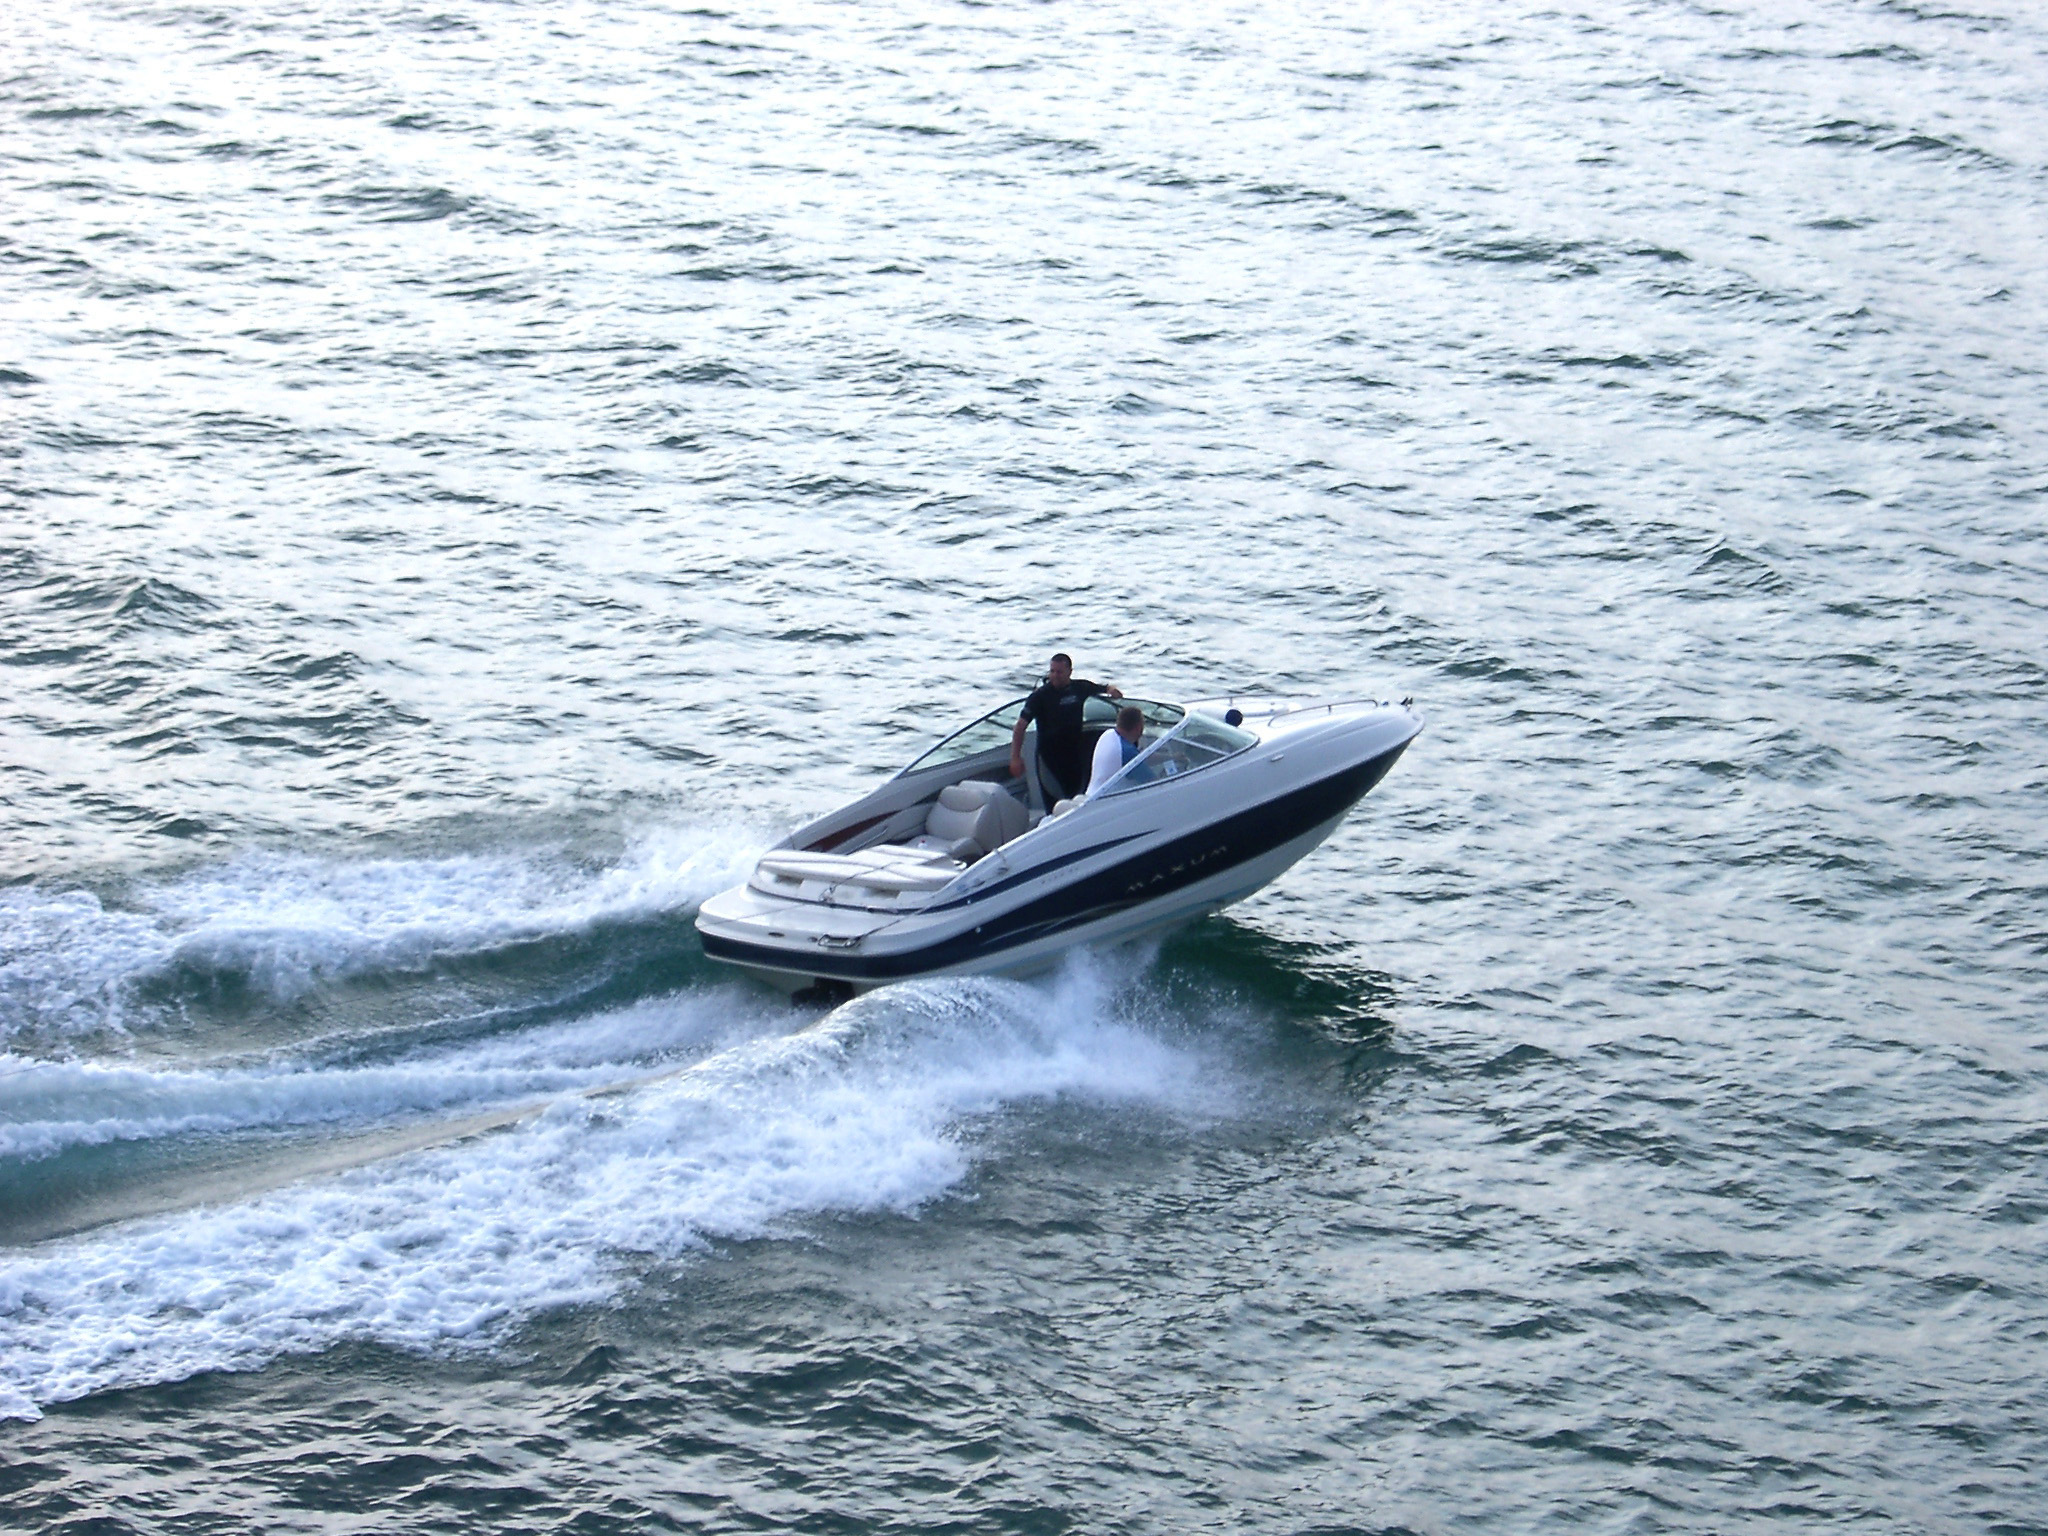 Aerial View of Man Travelling in a Small Speed Boat at Brighton Sea, England.